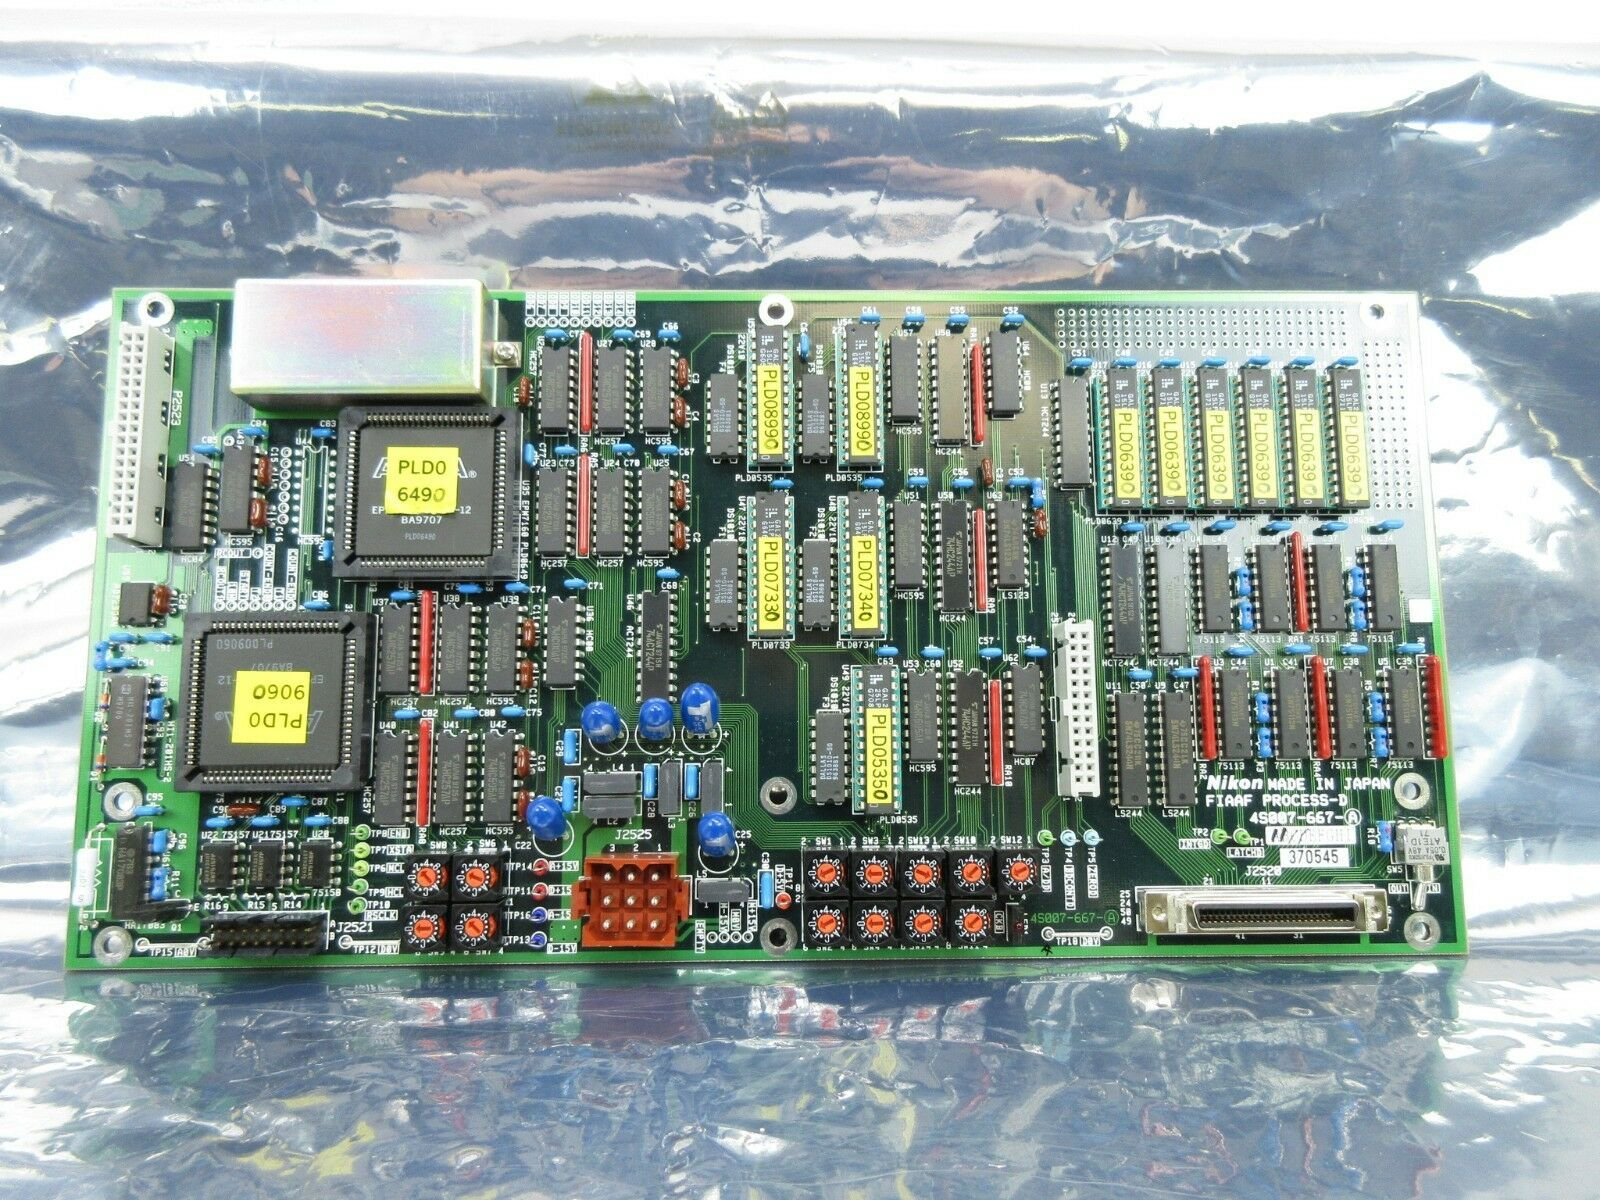 Nikon 4S007-667-A Processor Board PCB FIAAF PROCESS-D NSR-S202A Used Working